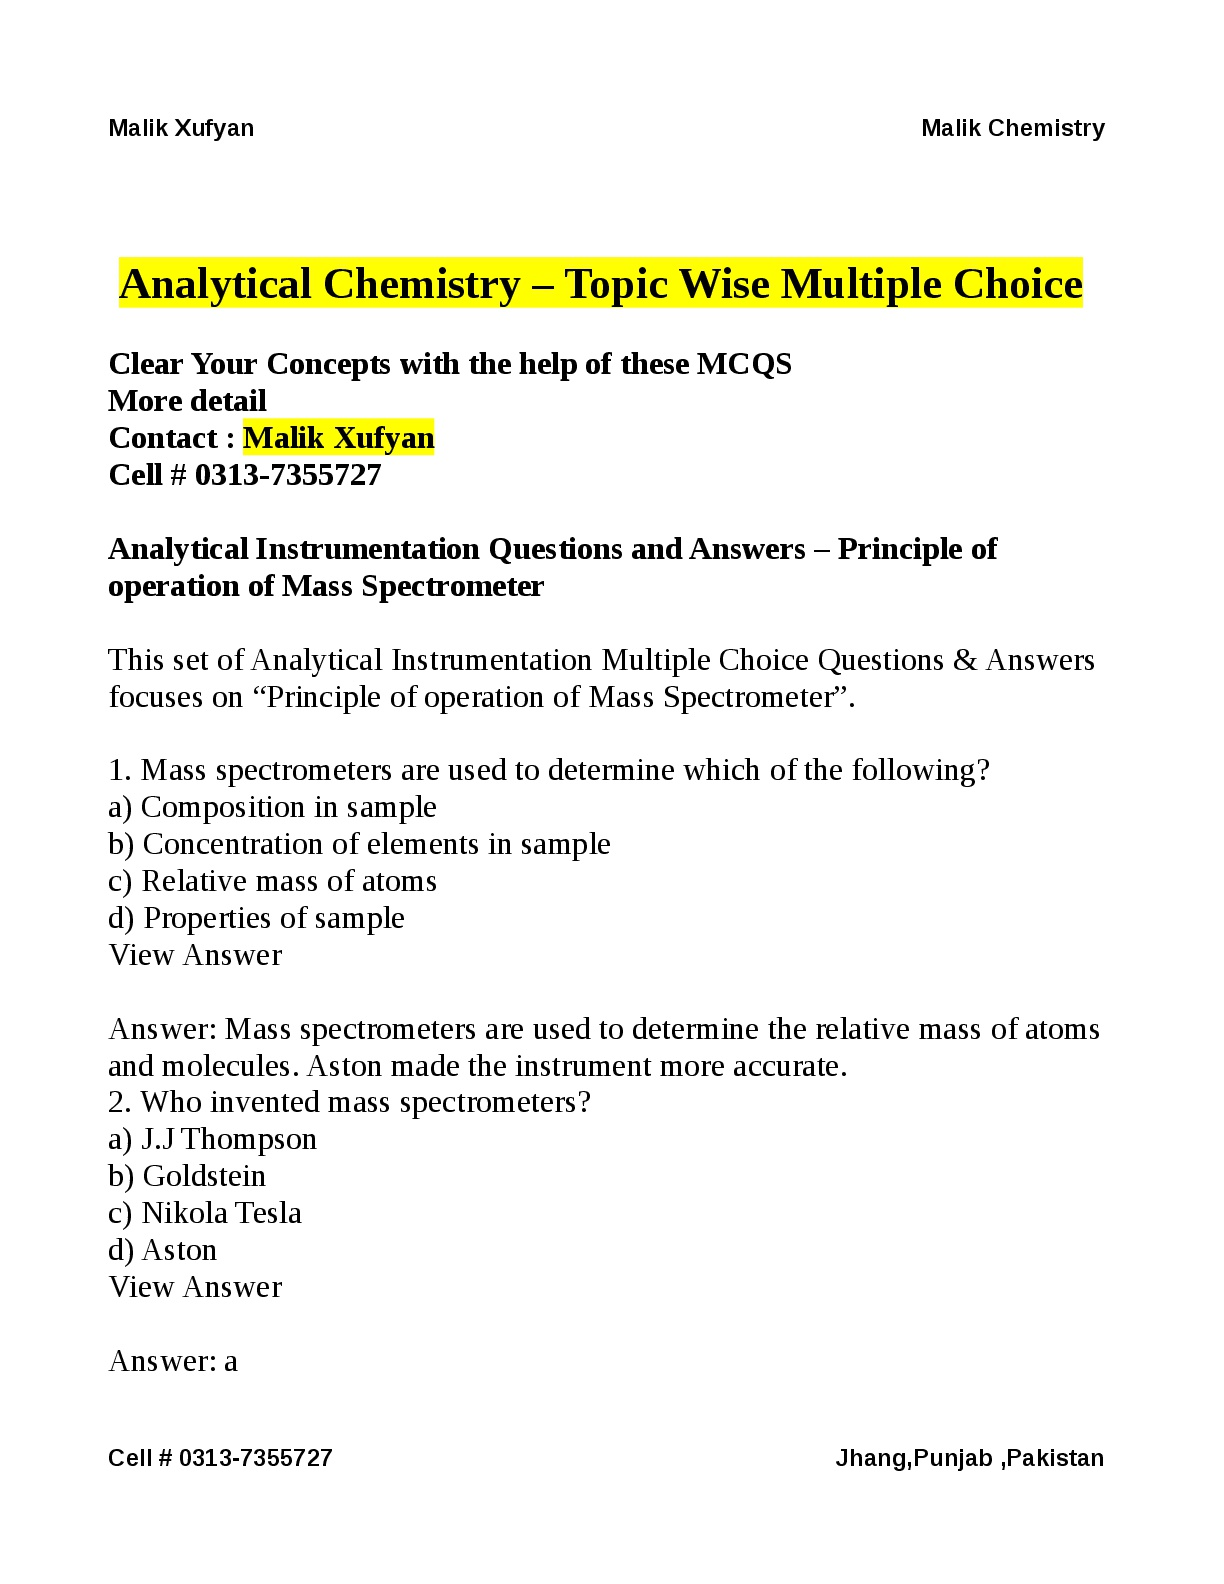 Analytical Chemistry Multiple Choice Questions By Malik Xufyan